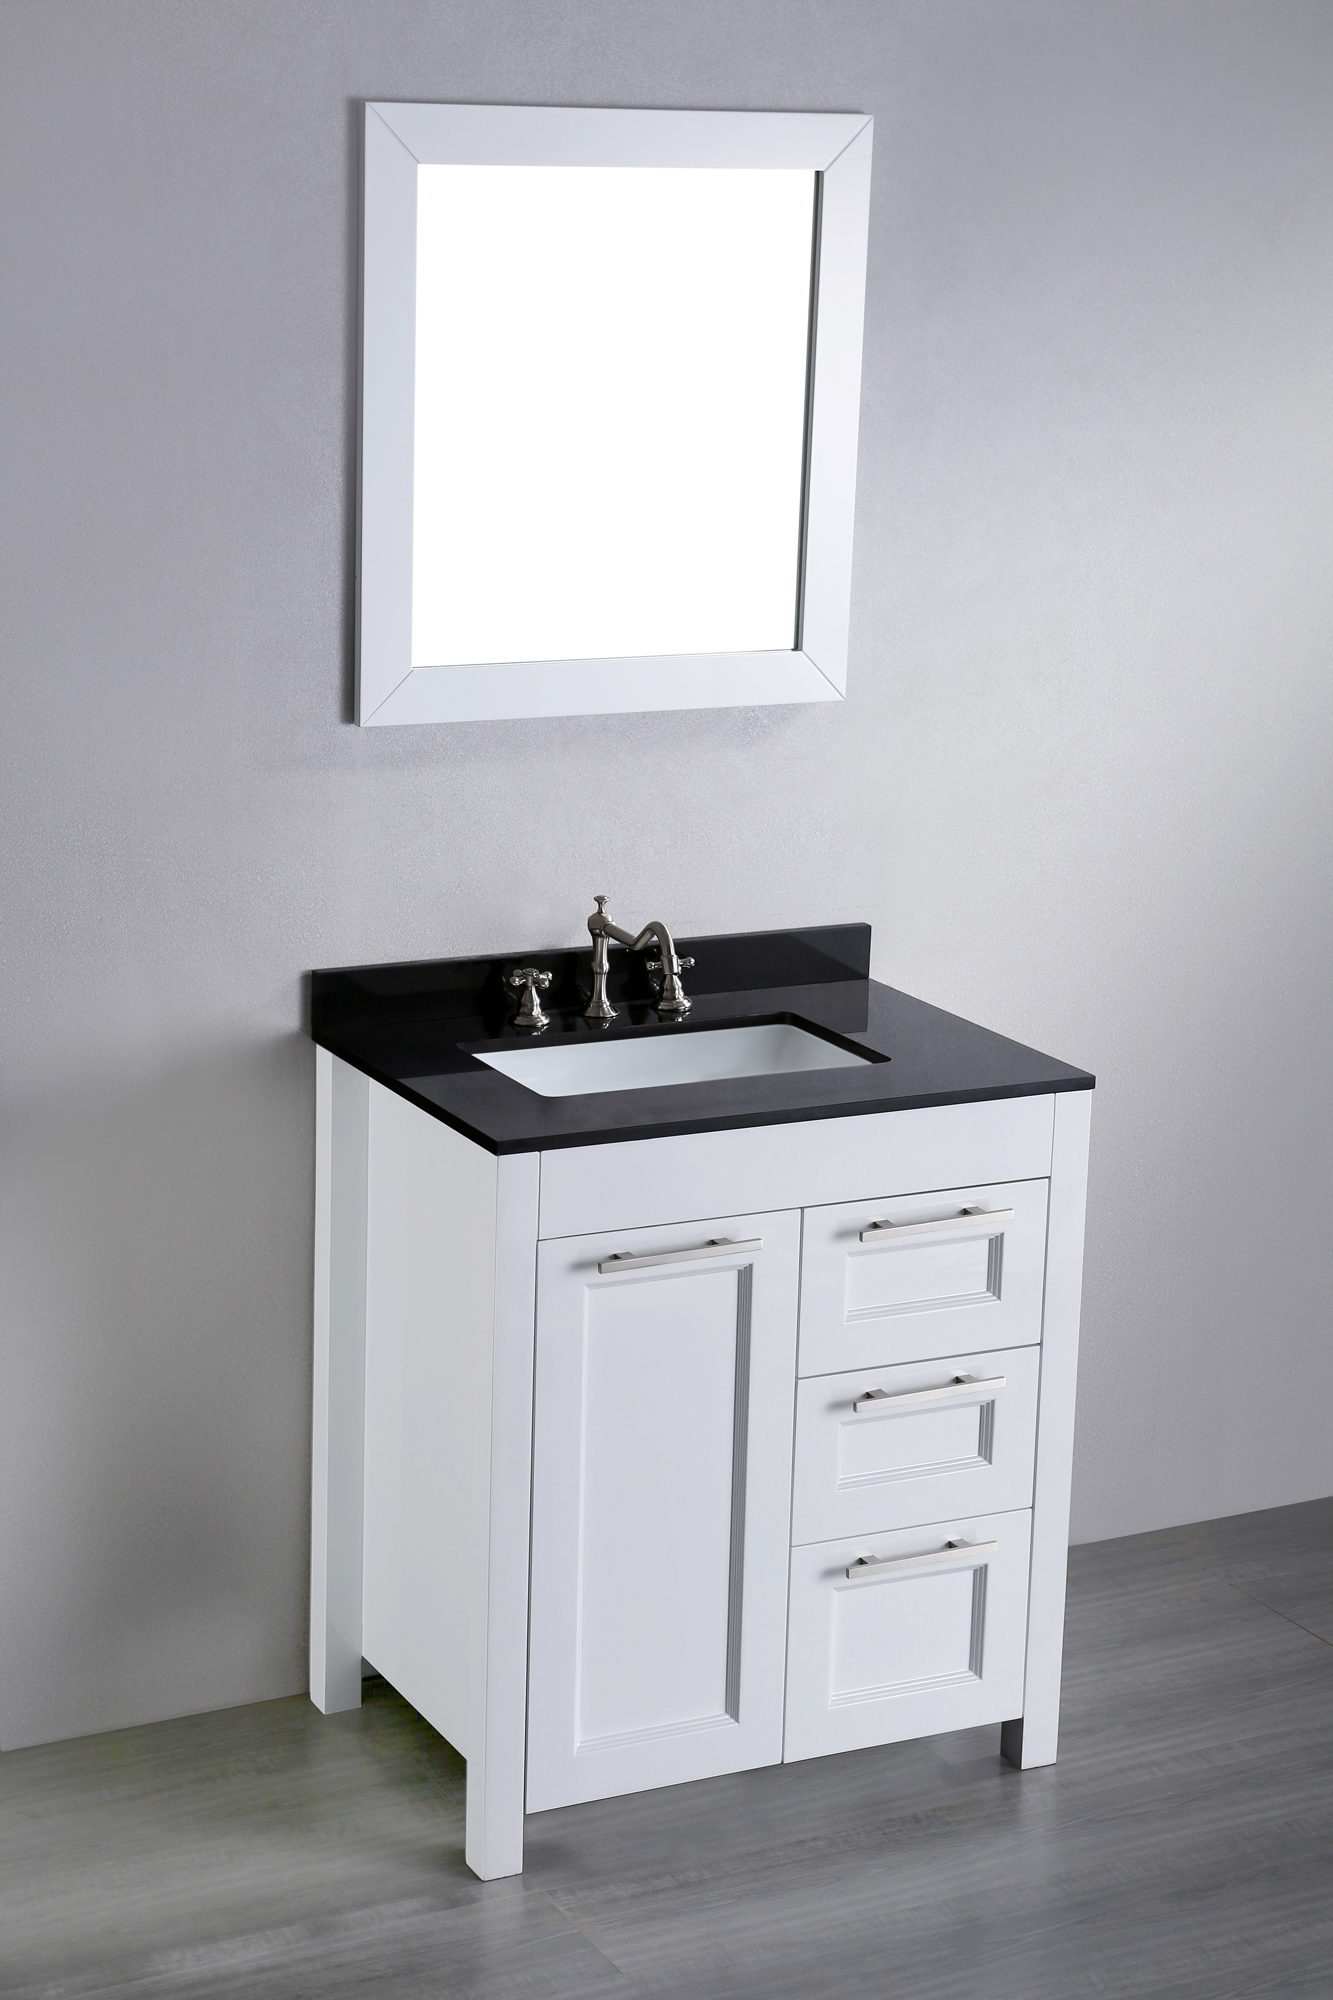 Permalink to 30 Inch Bathroom Vanity With Top White